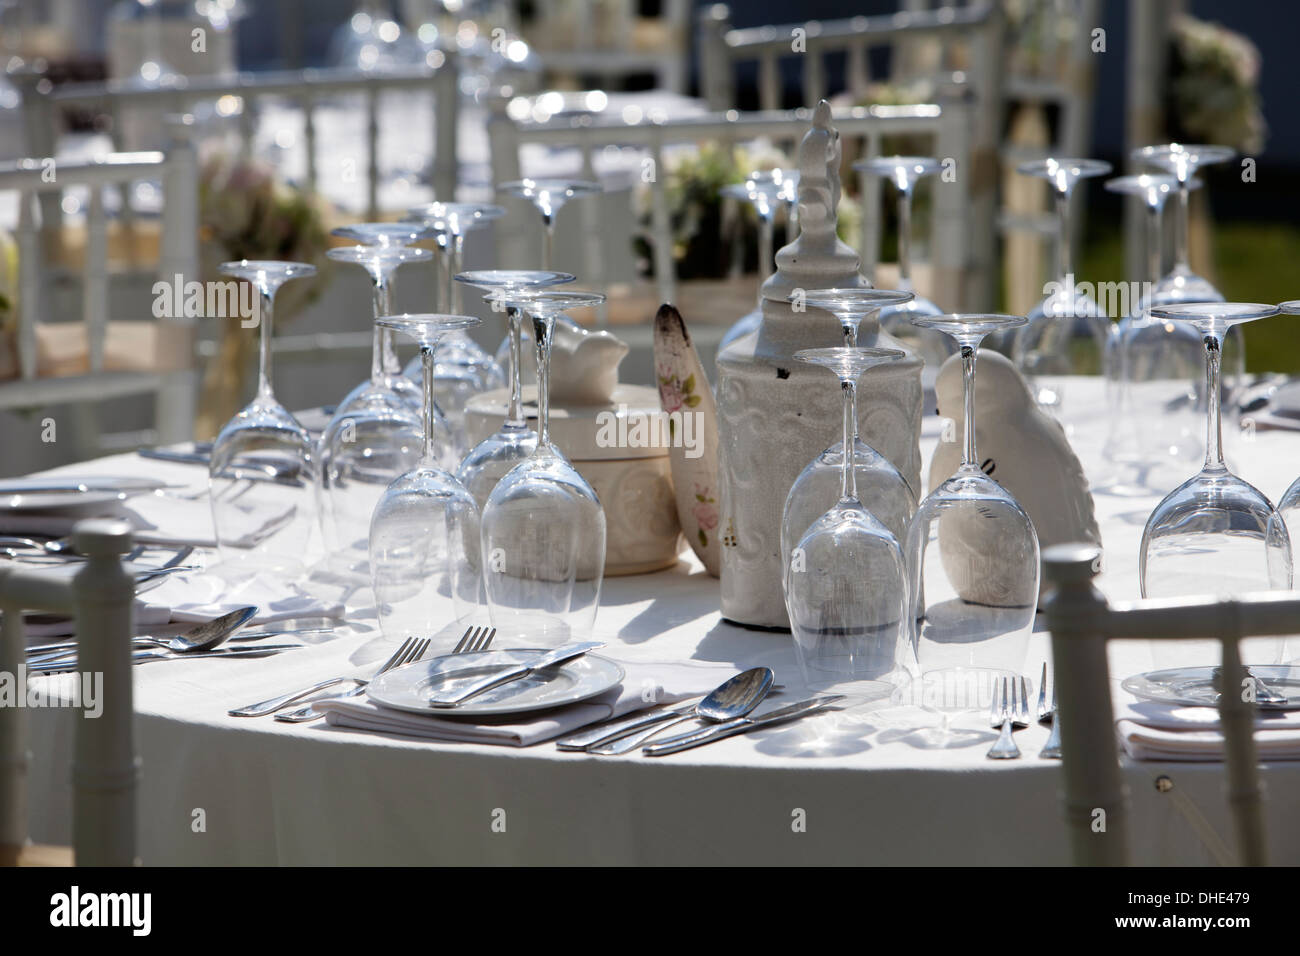 Wedding table decoration reception trees plates eat eating guests party attract attraction detail snow snowy drink enjoy fun - Stock Image